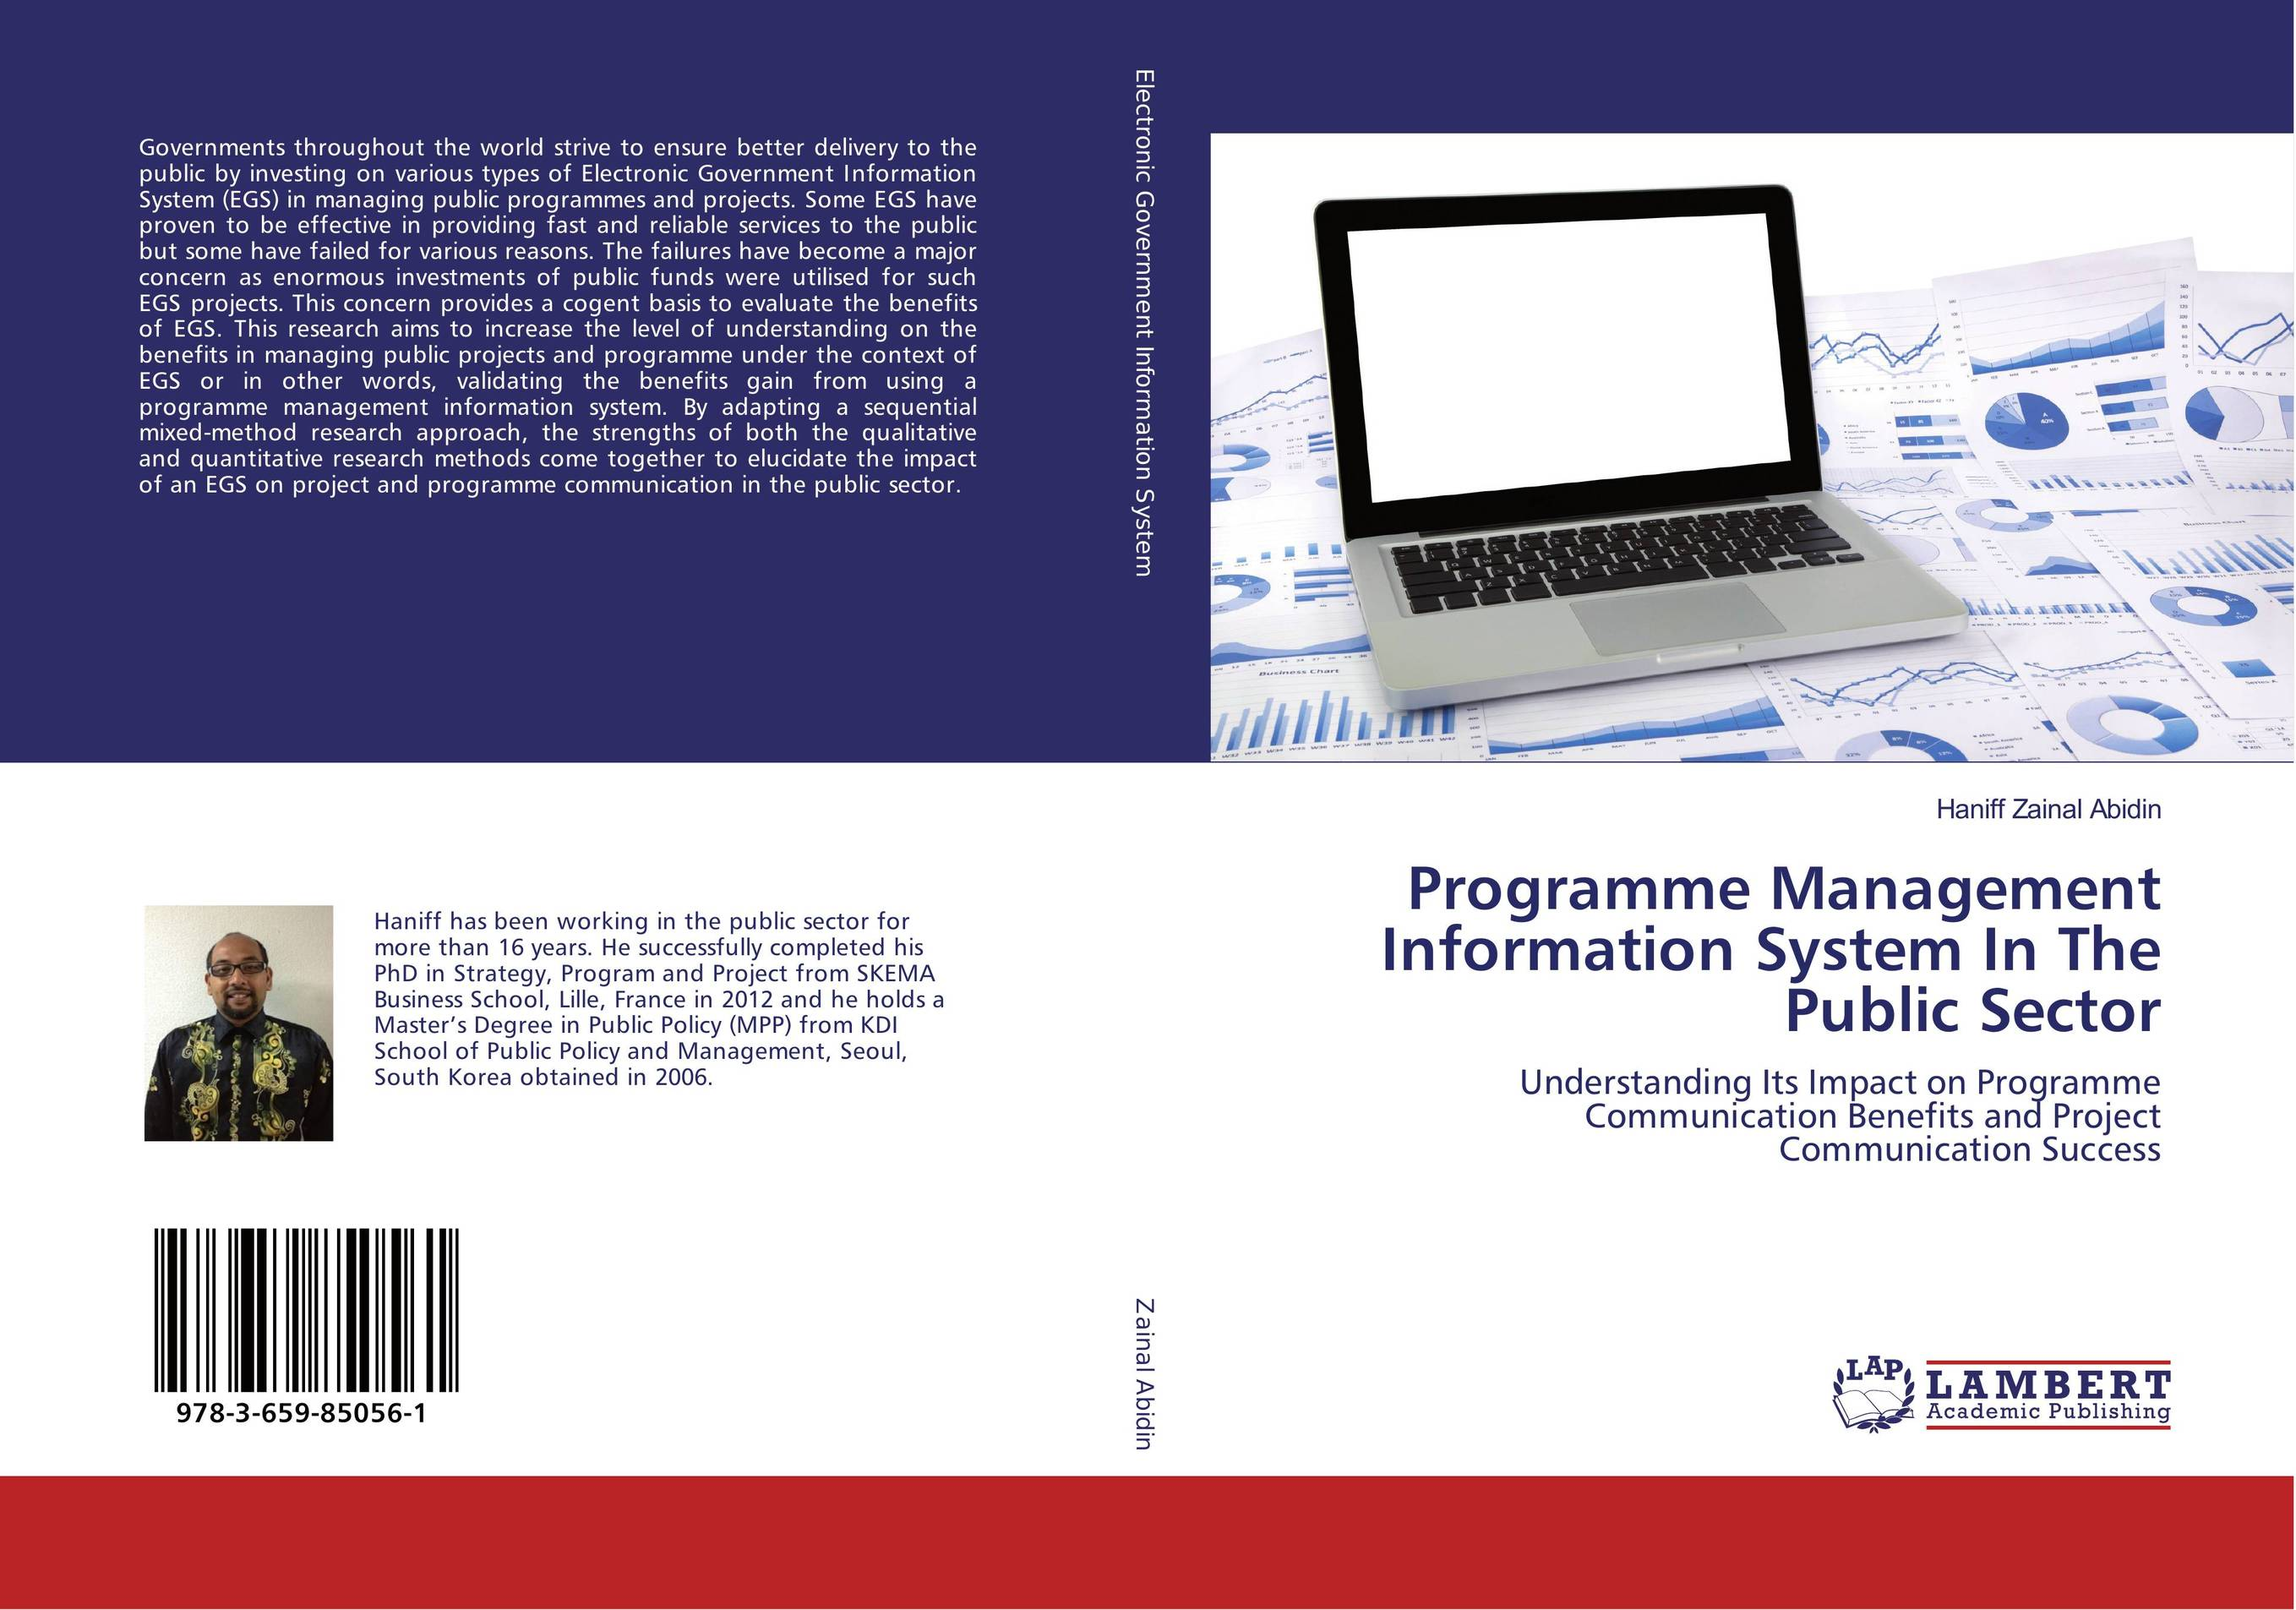 Programme Management Information System In The Public Sector public sector management techniques